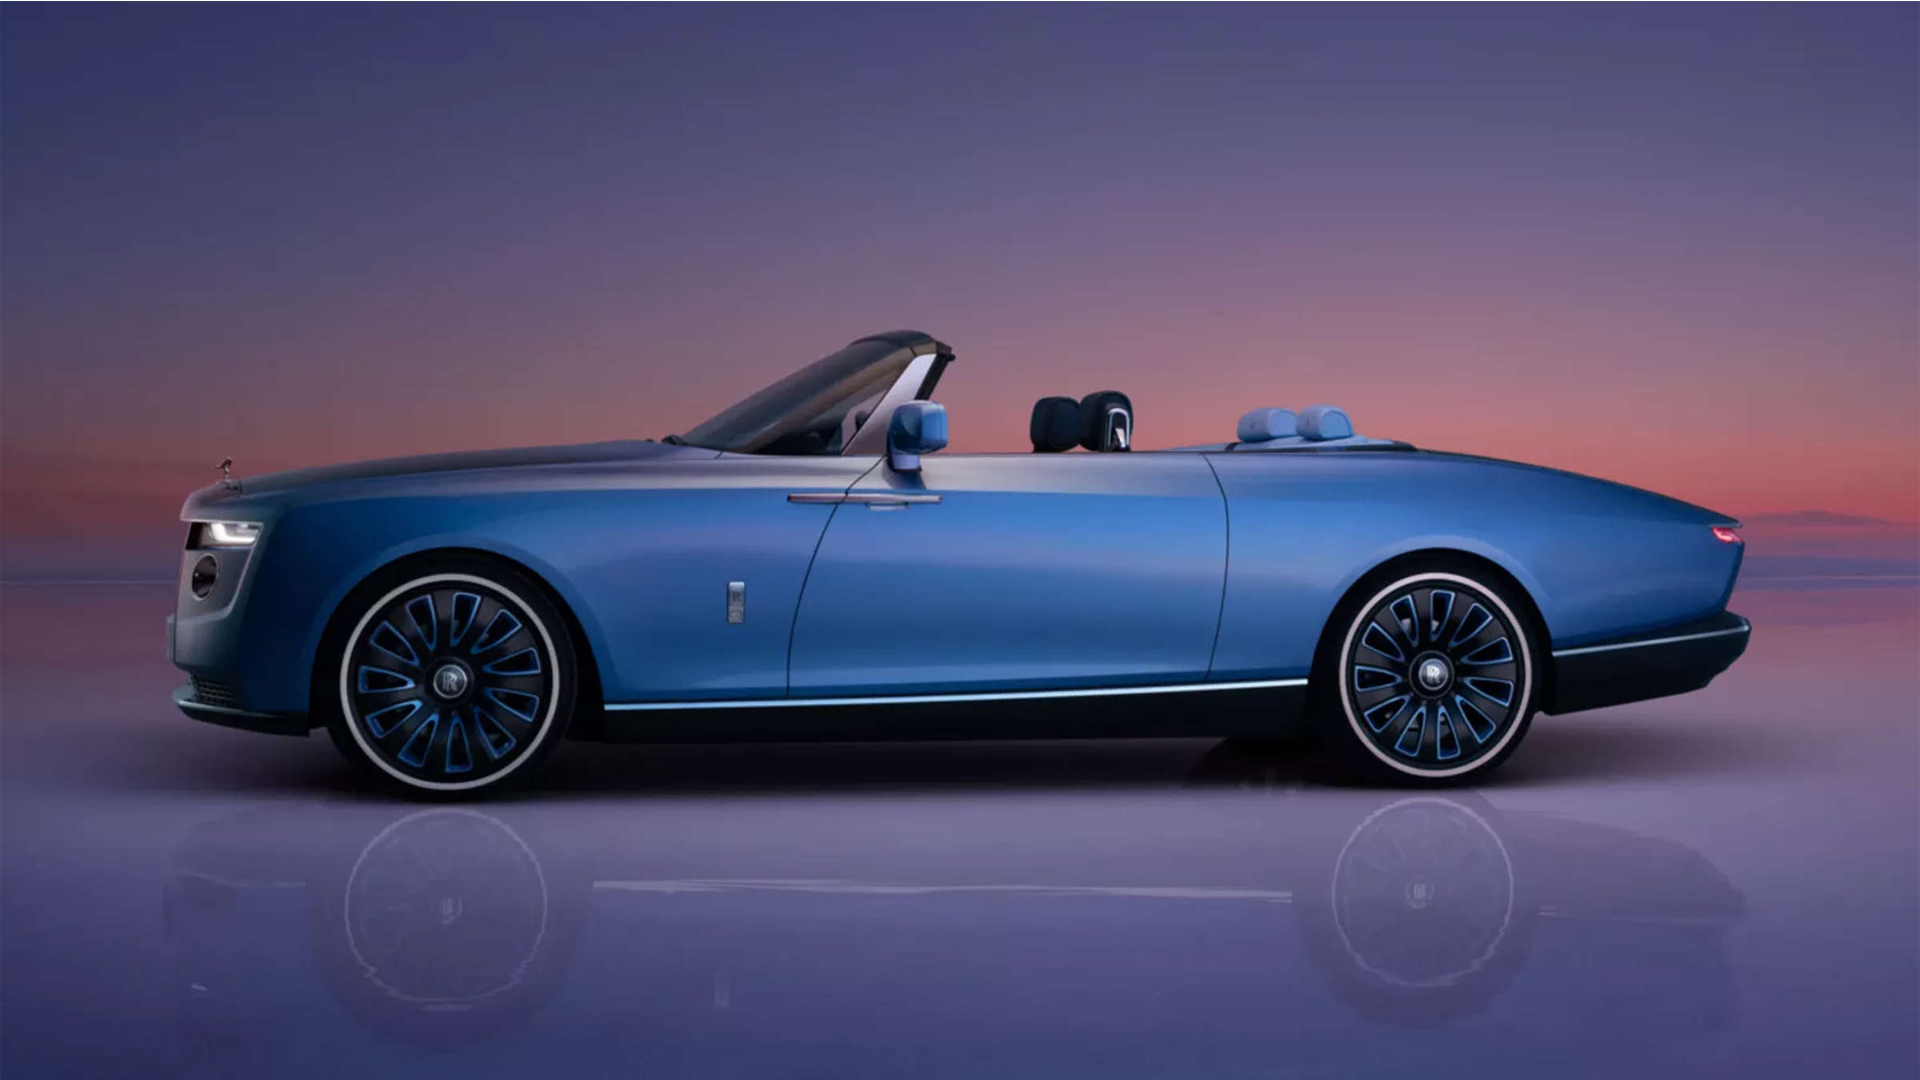 marine blue luxury car Rolls Royce Boat Tail side view on background sunset